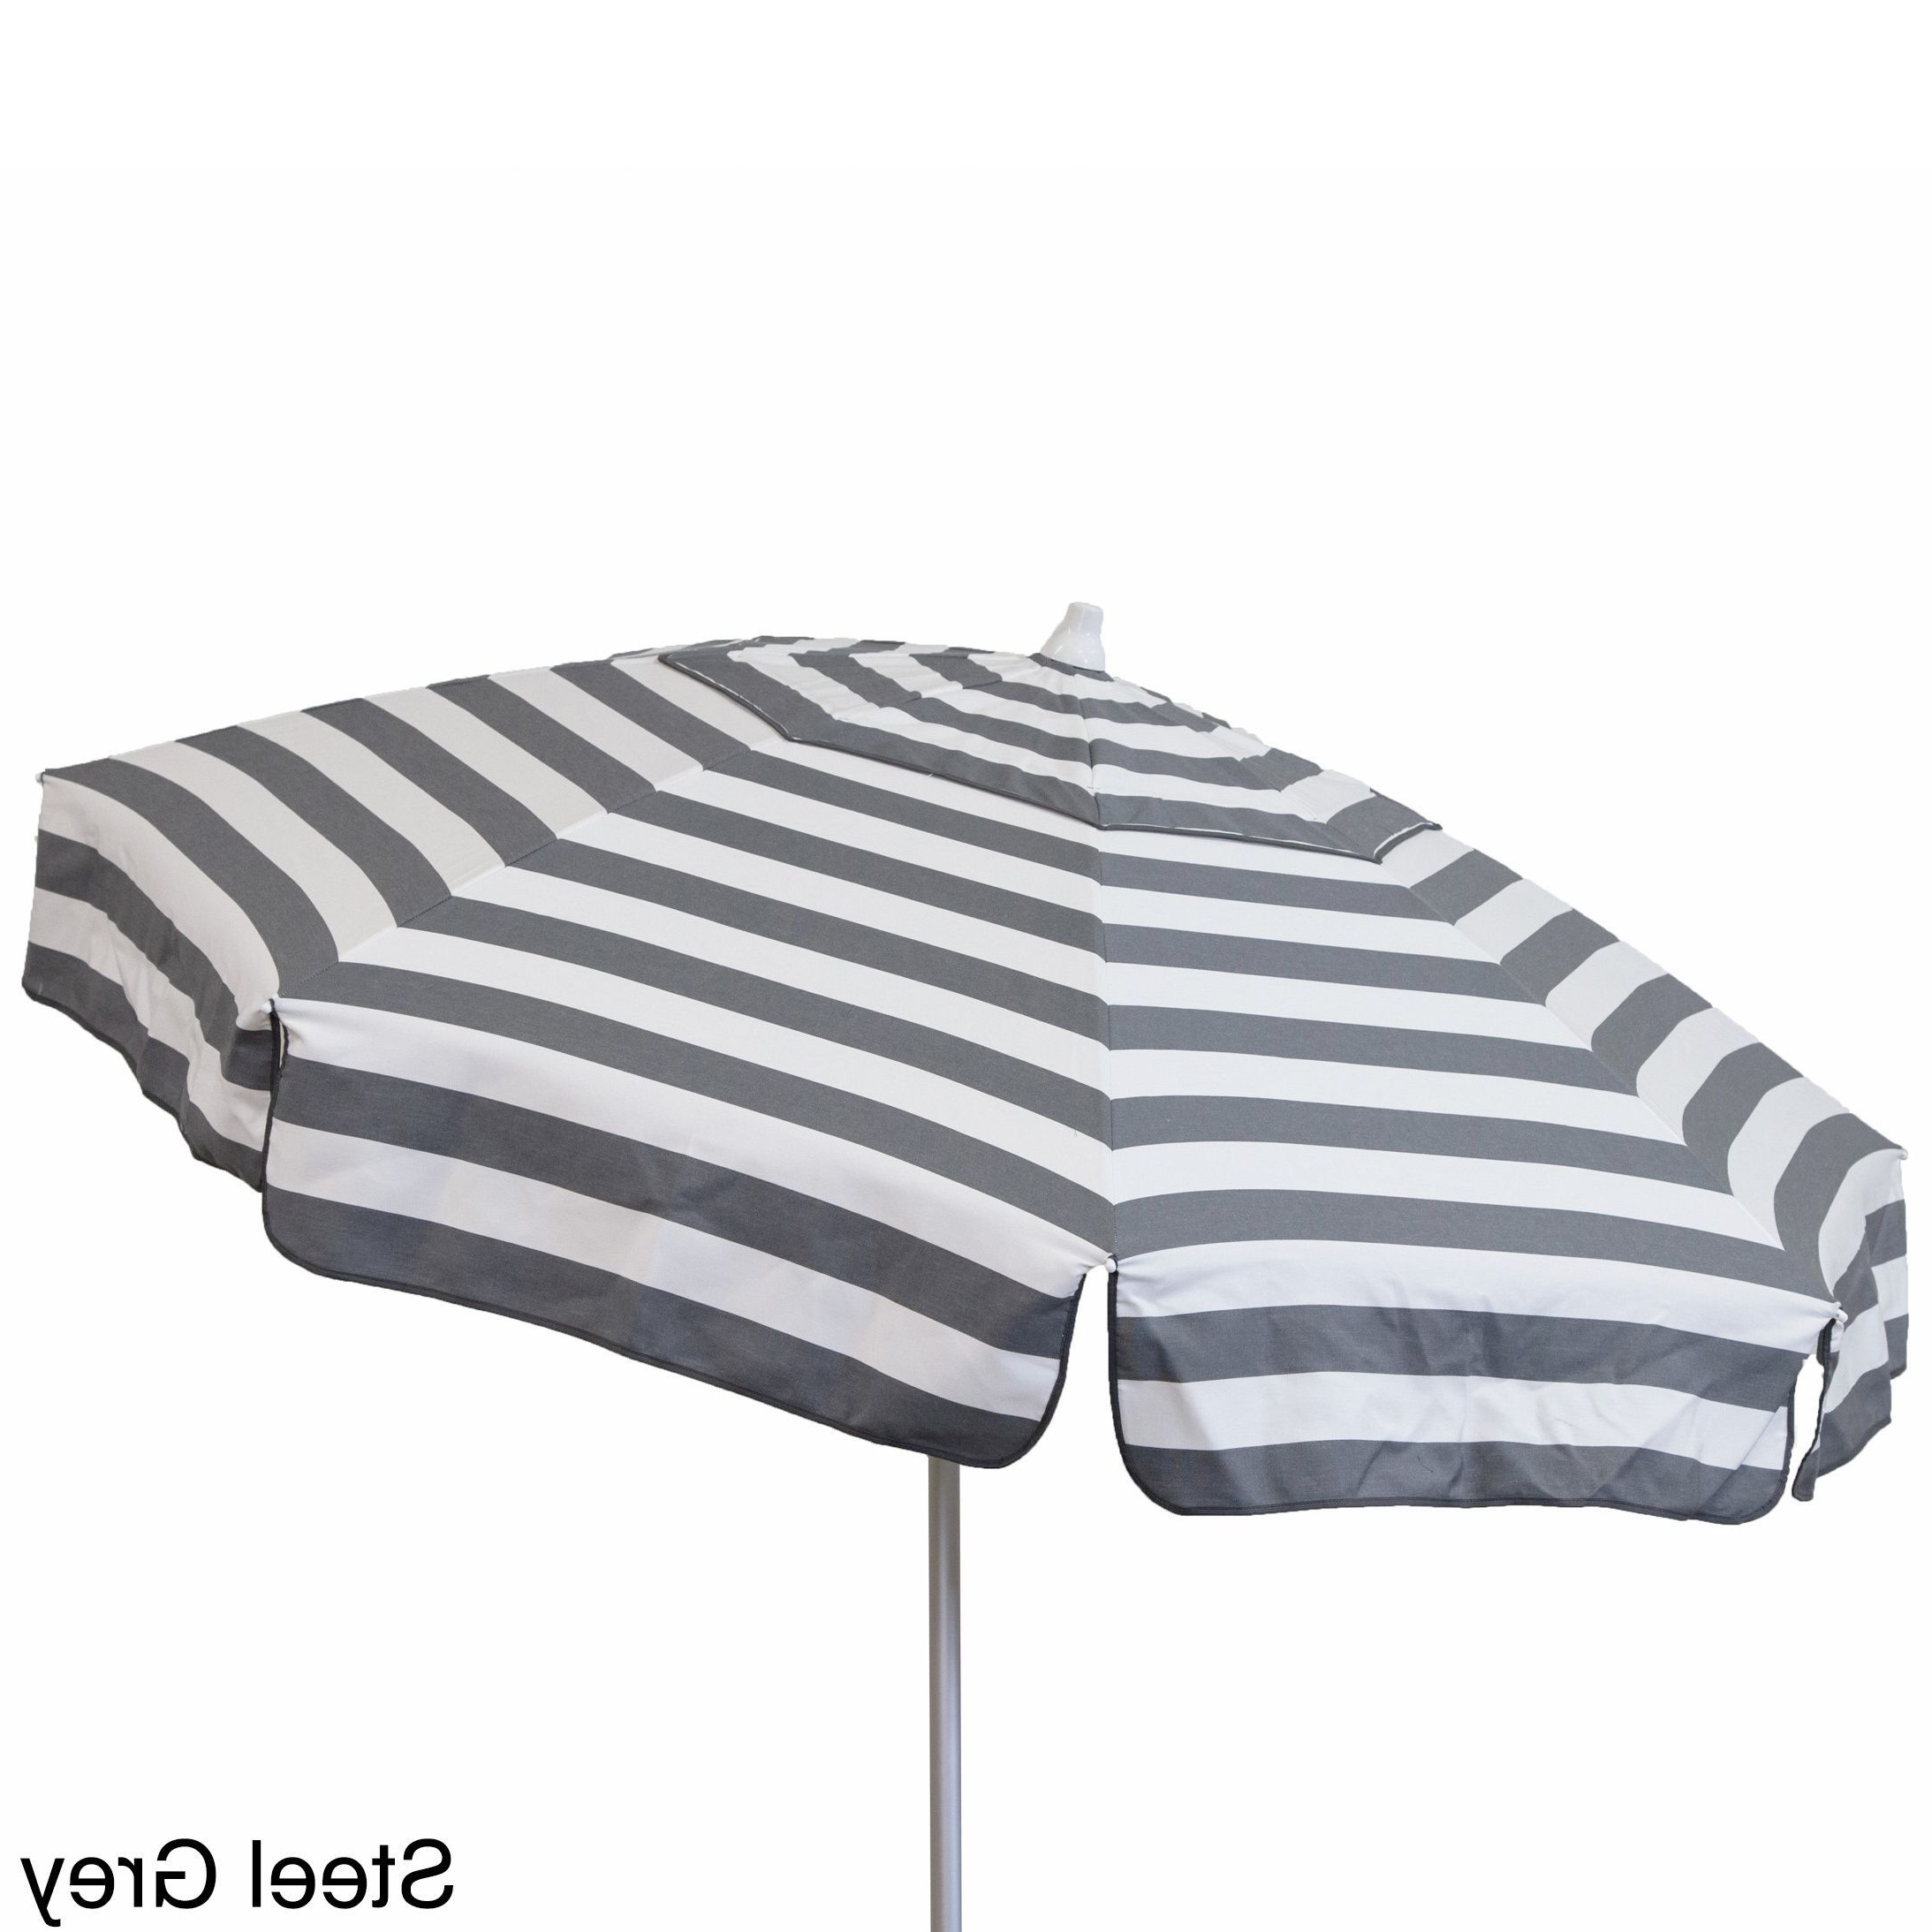 Italian Drape Umbrellas With Recent Euro 6 Foot Striped Umbrella (Steel Grey And White – Beach Pole (Gallery 19 of 20)